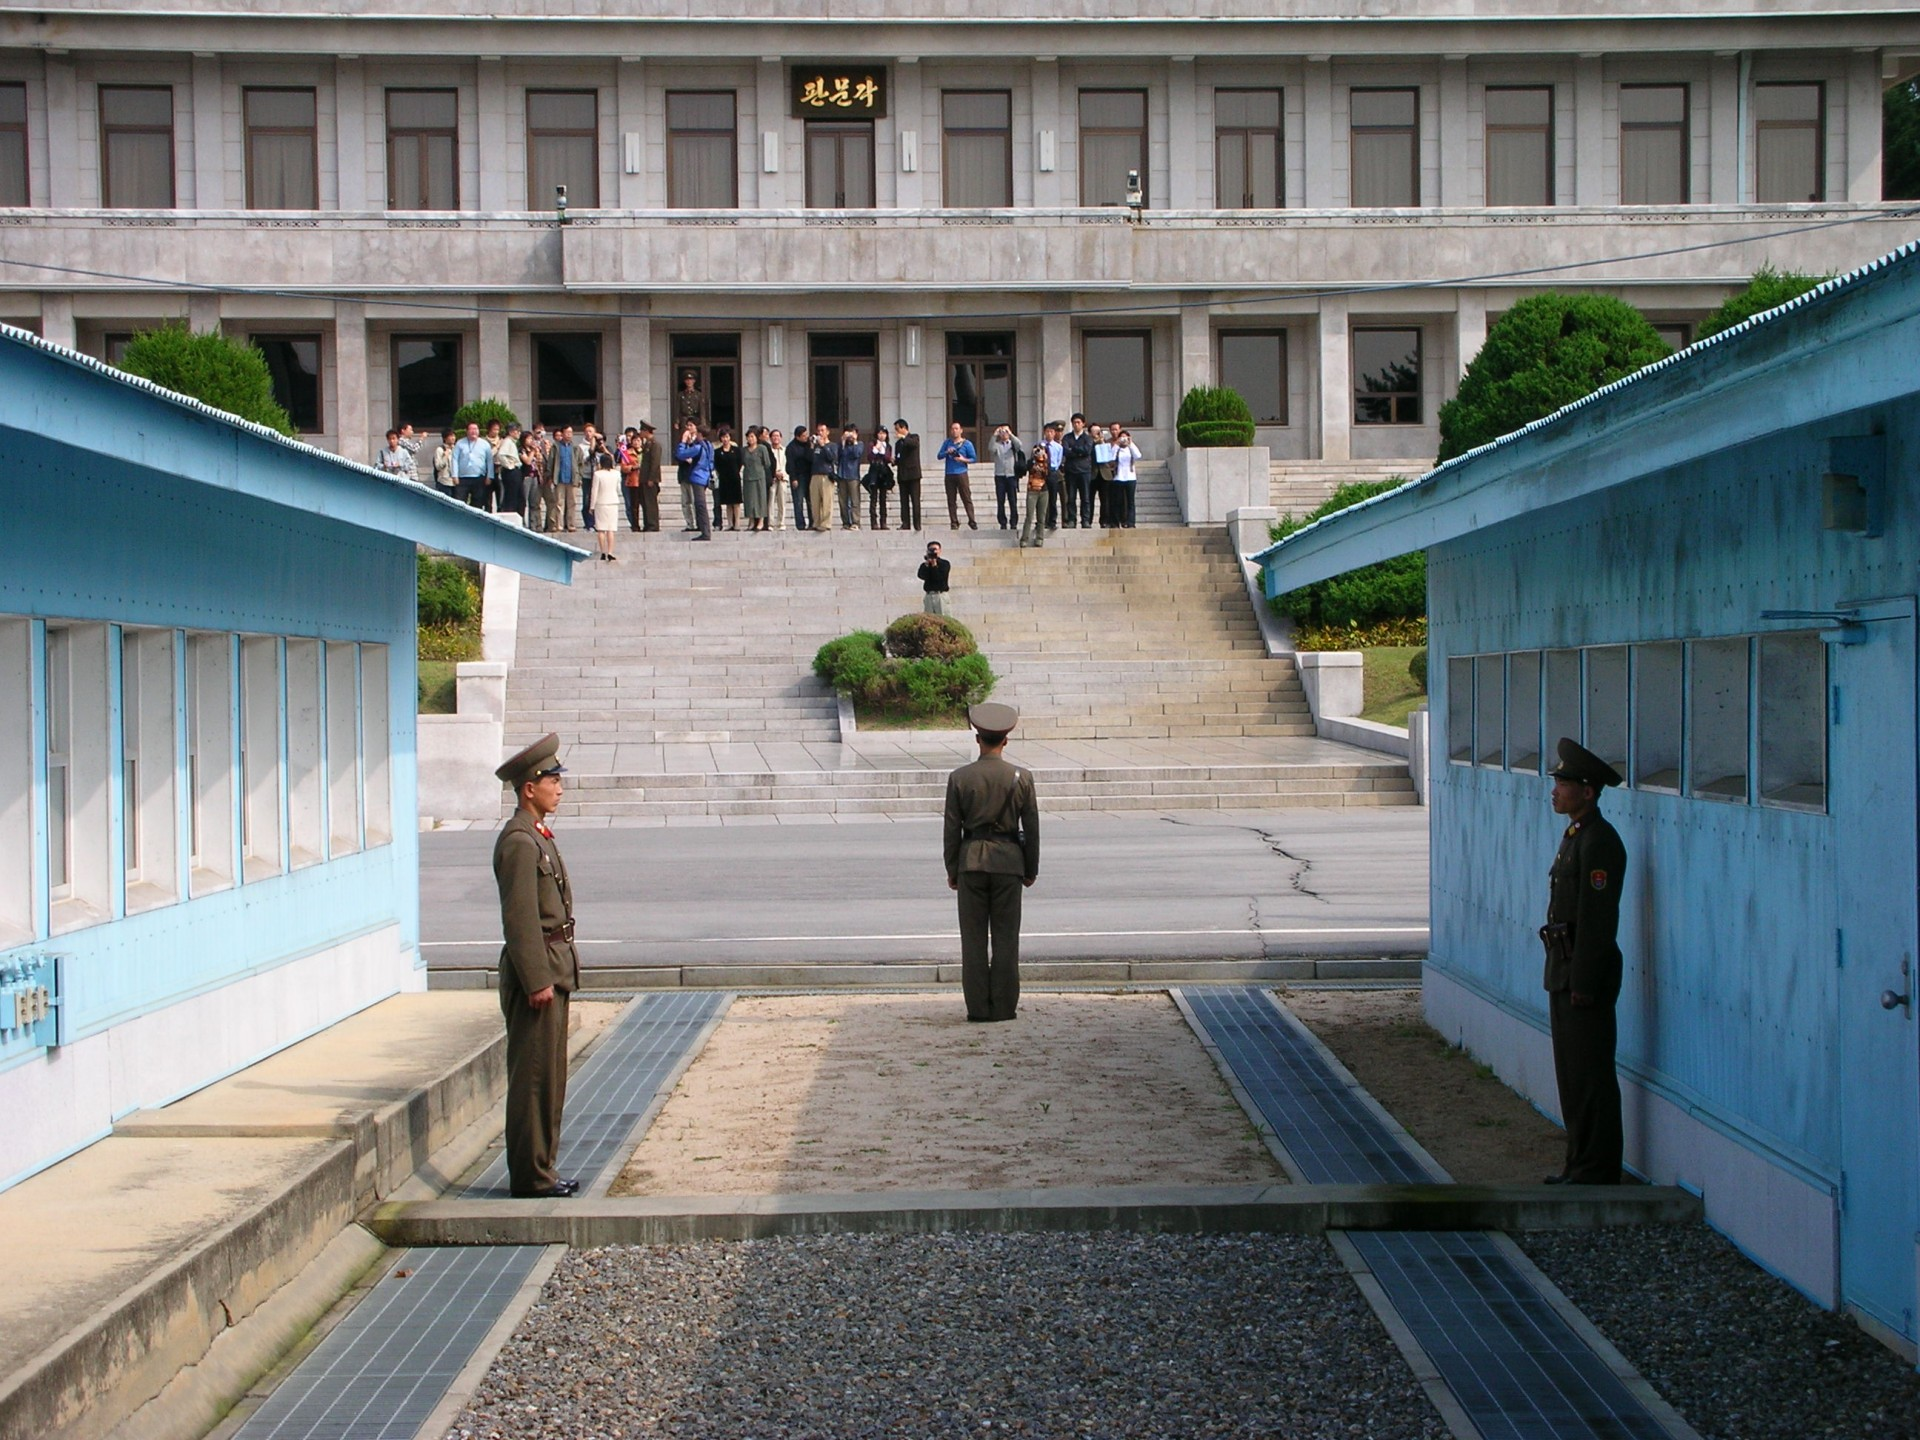 Soldiers from the Korean People's Army (KPA) stand guard at the Military Demarcation Line inside the Joint Security Area (JSA) in July 2005.  On 23 November 1984, Vasilii Matuzok, a translator working at the Soviet embassy in Pyongyang, North Korea, stepped across the concrete blocks to freedom, sparking a firefight.  (Author's collection)